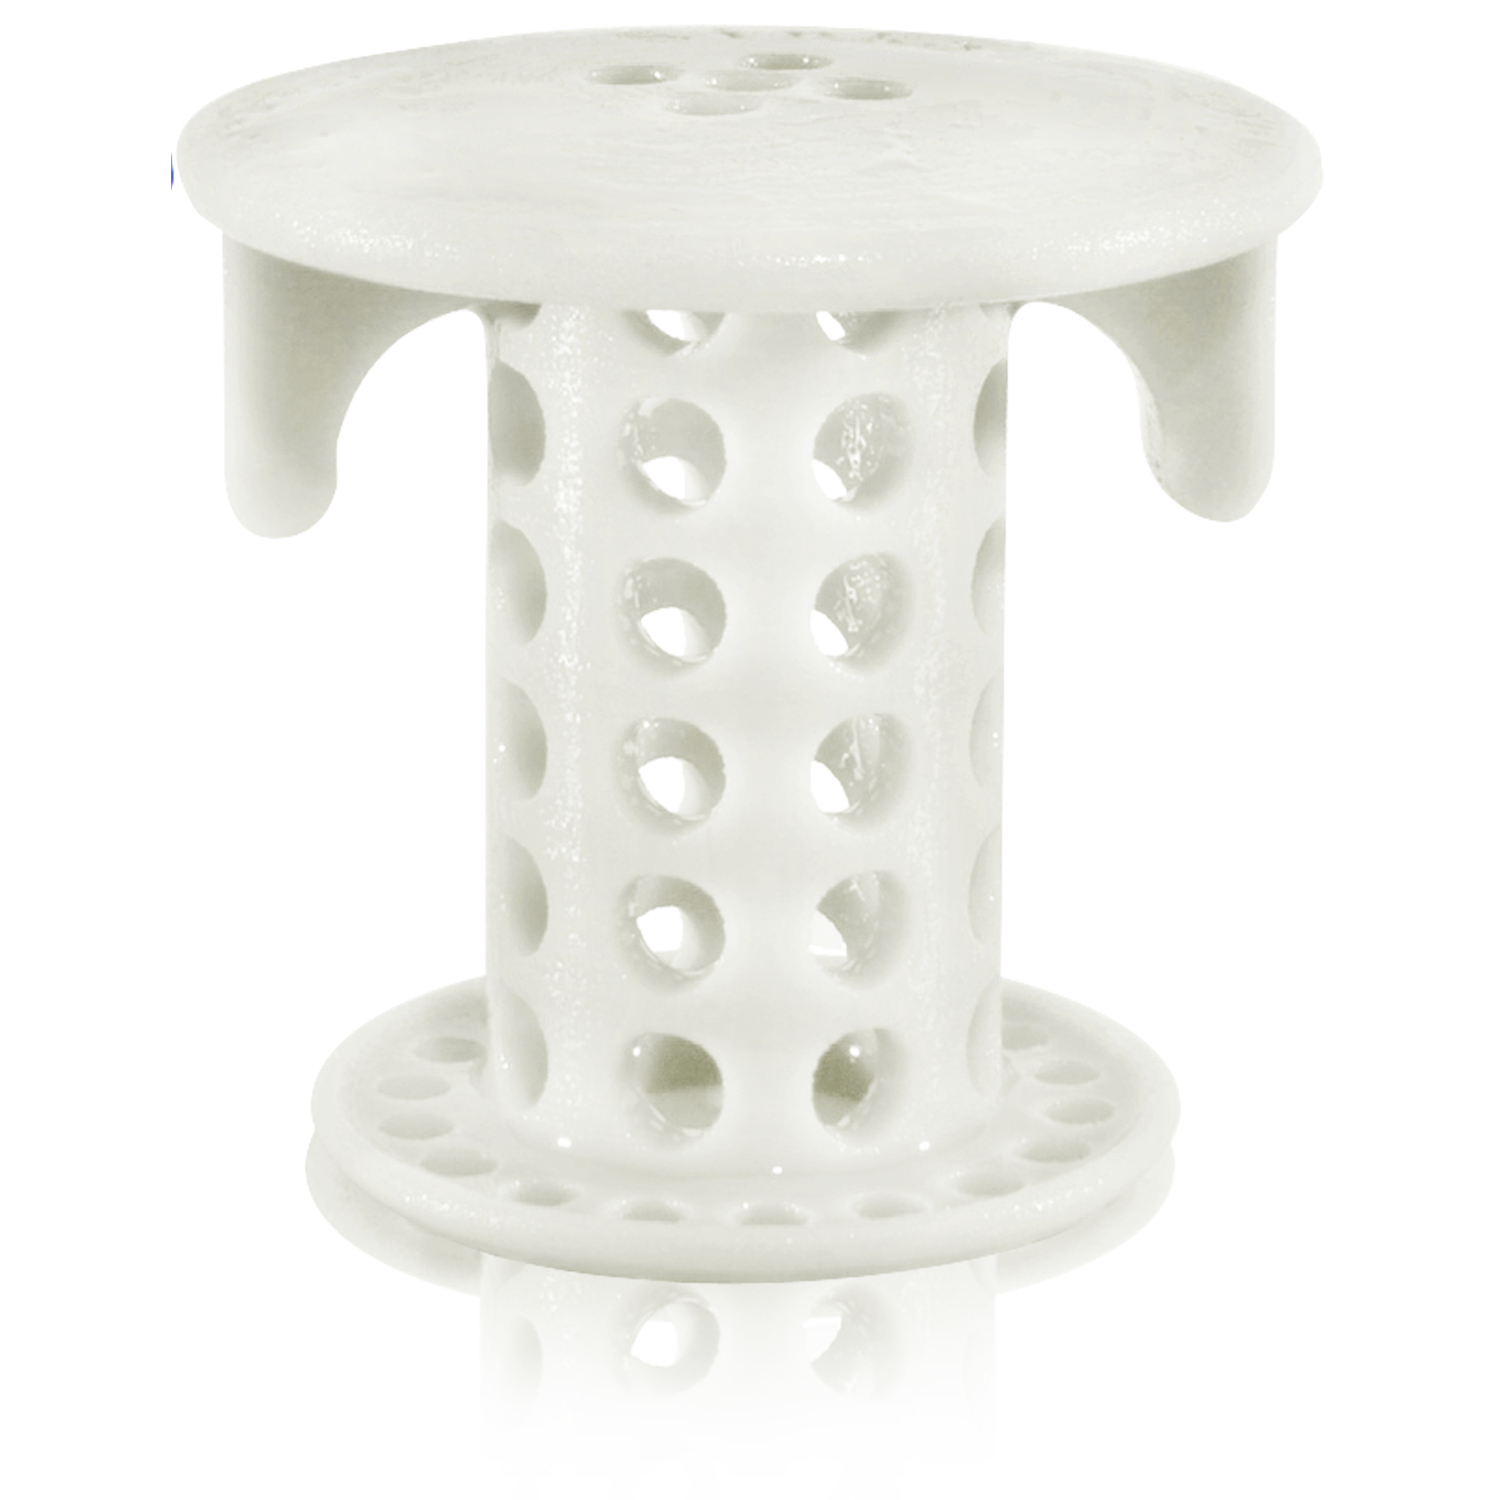 Sink Shroom  1-1/2 in. White  Silicone  Grate  Drain Hair Catcher